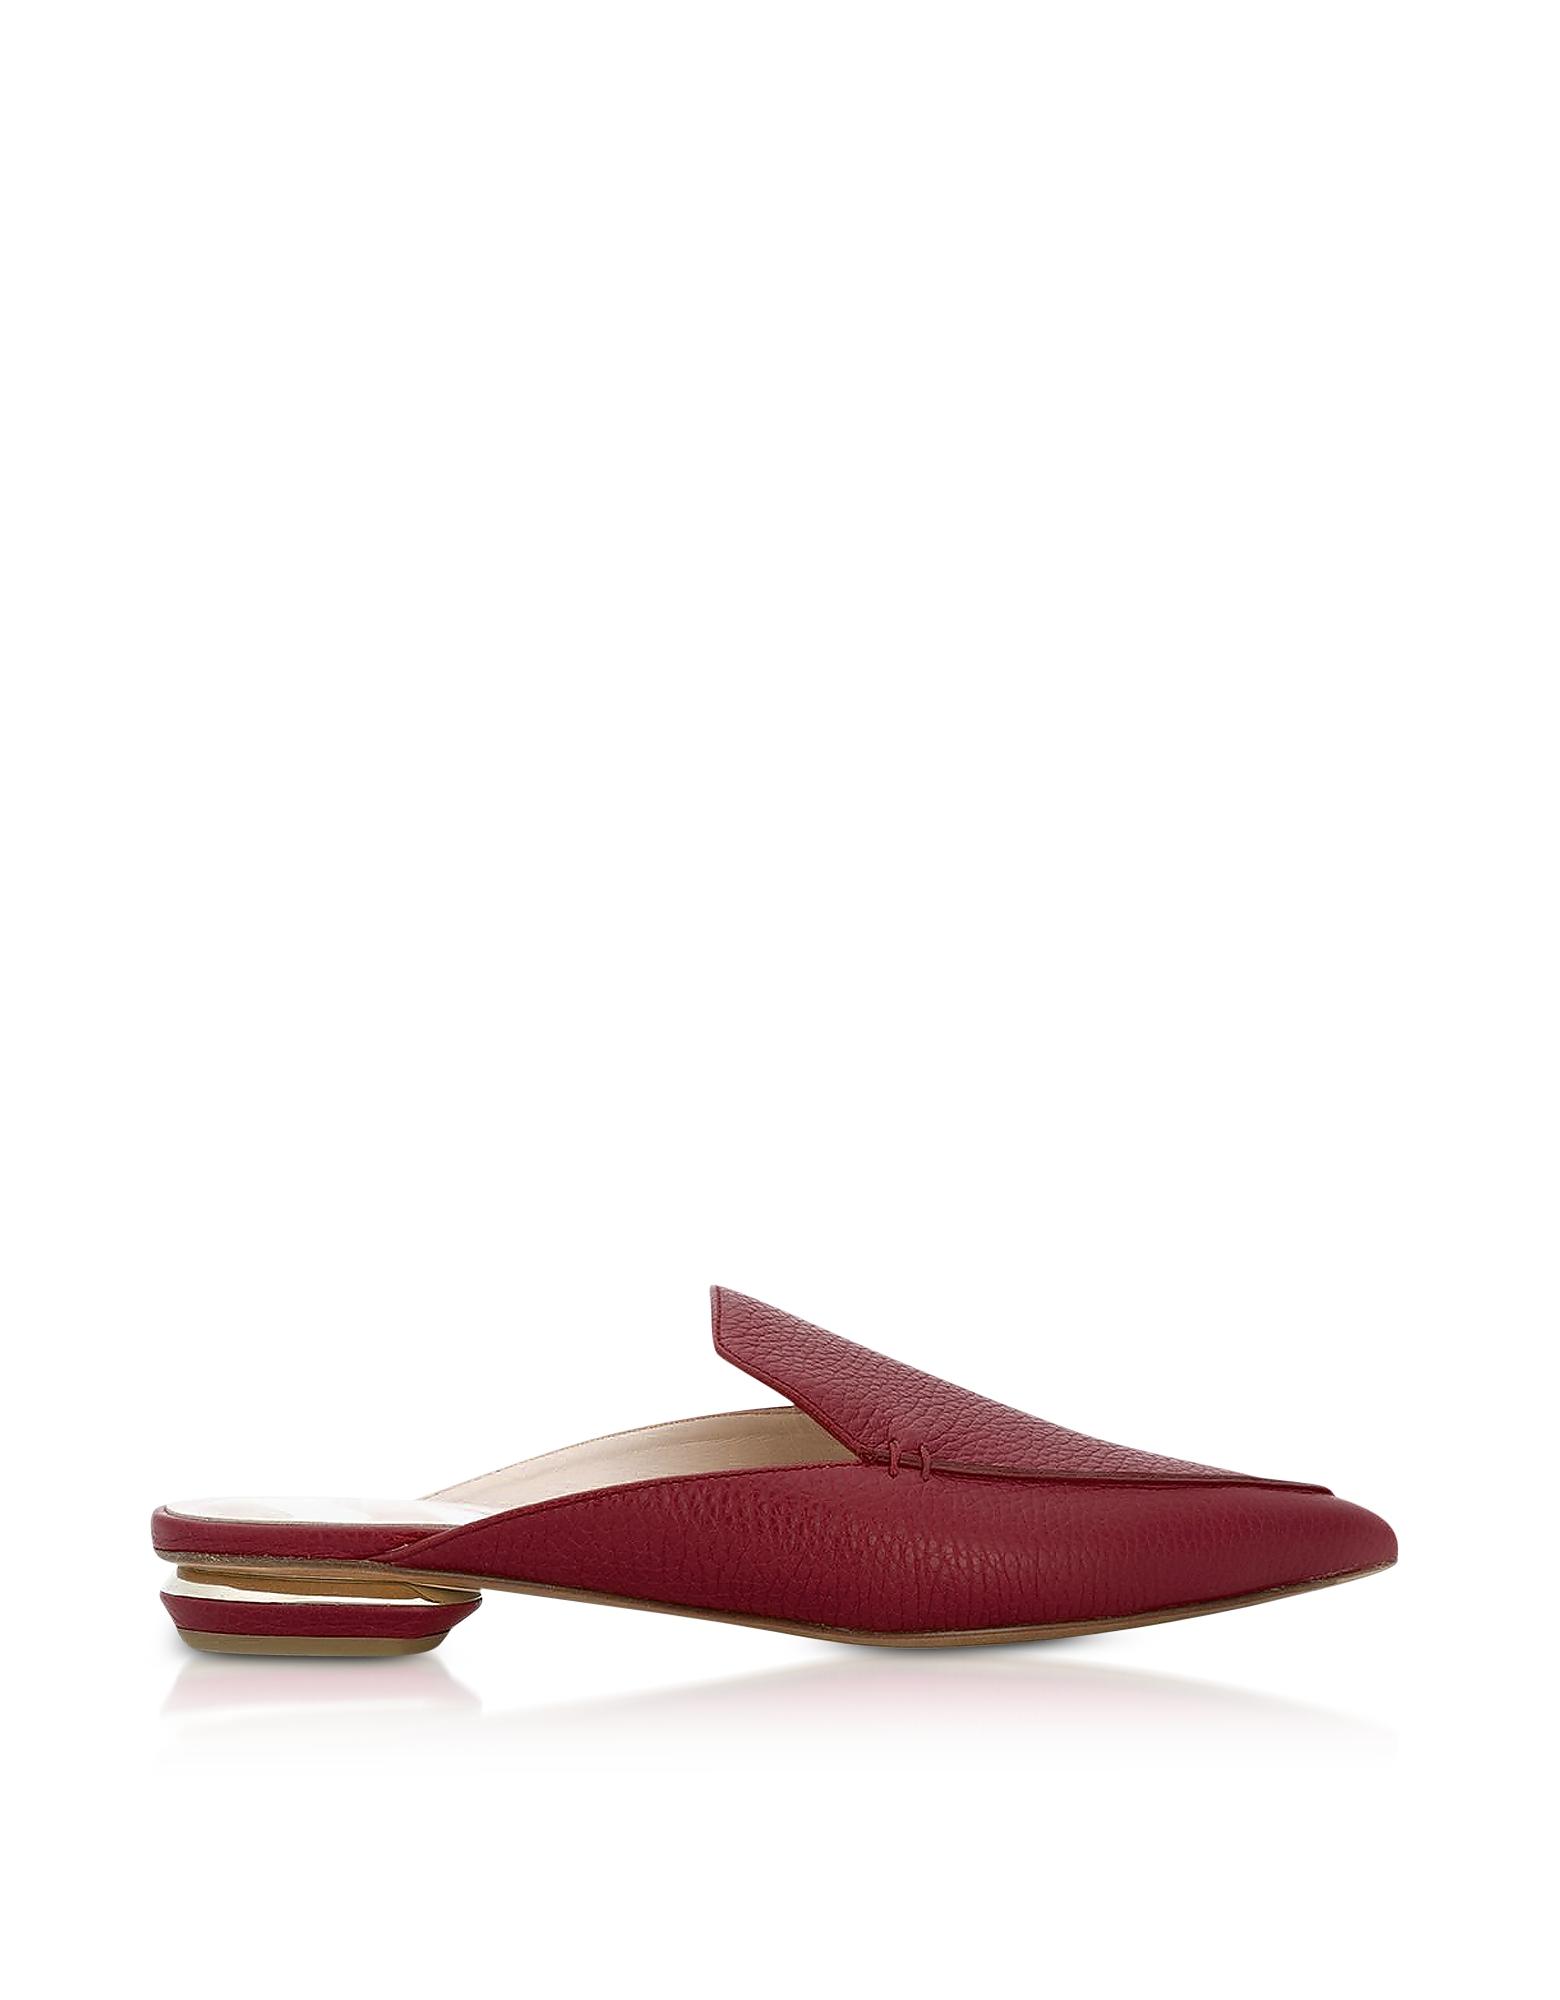 Nicholas Kirkwood Shoes, Beya Burgundy Tumbled Leather Mules